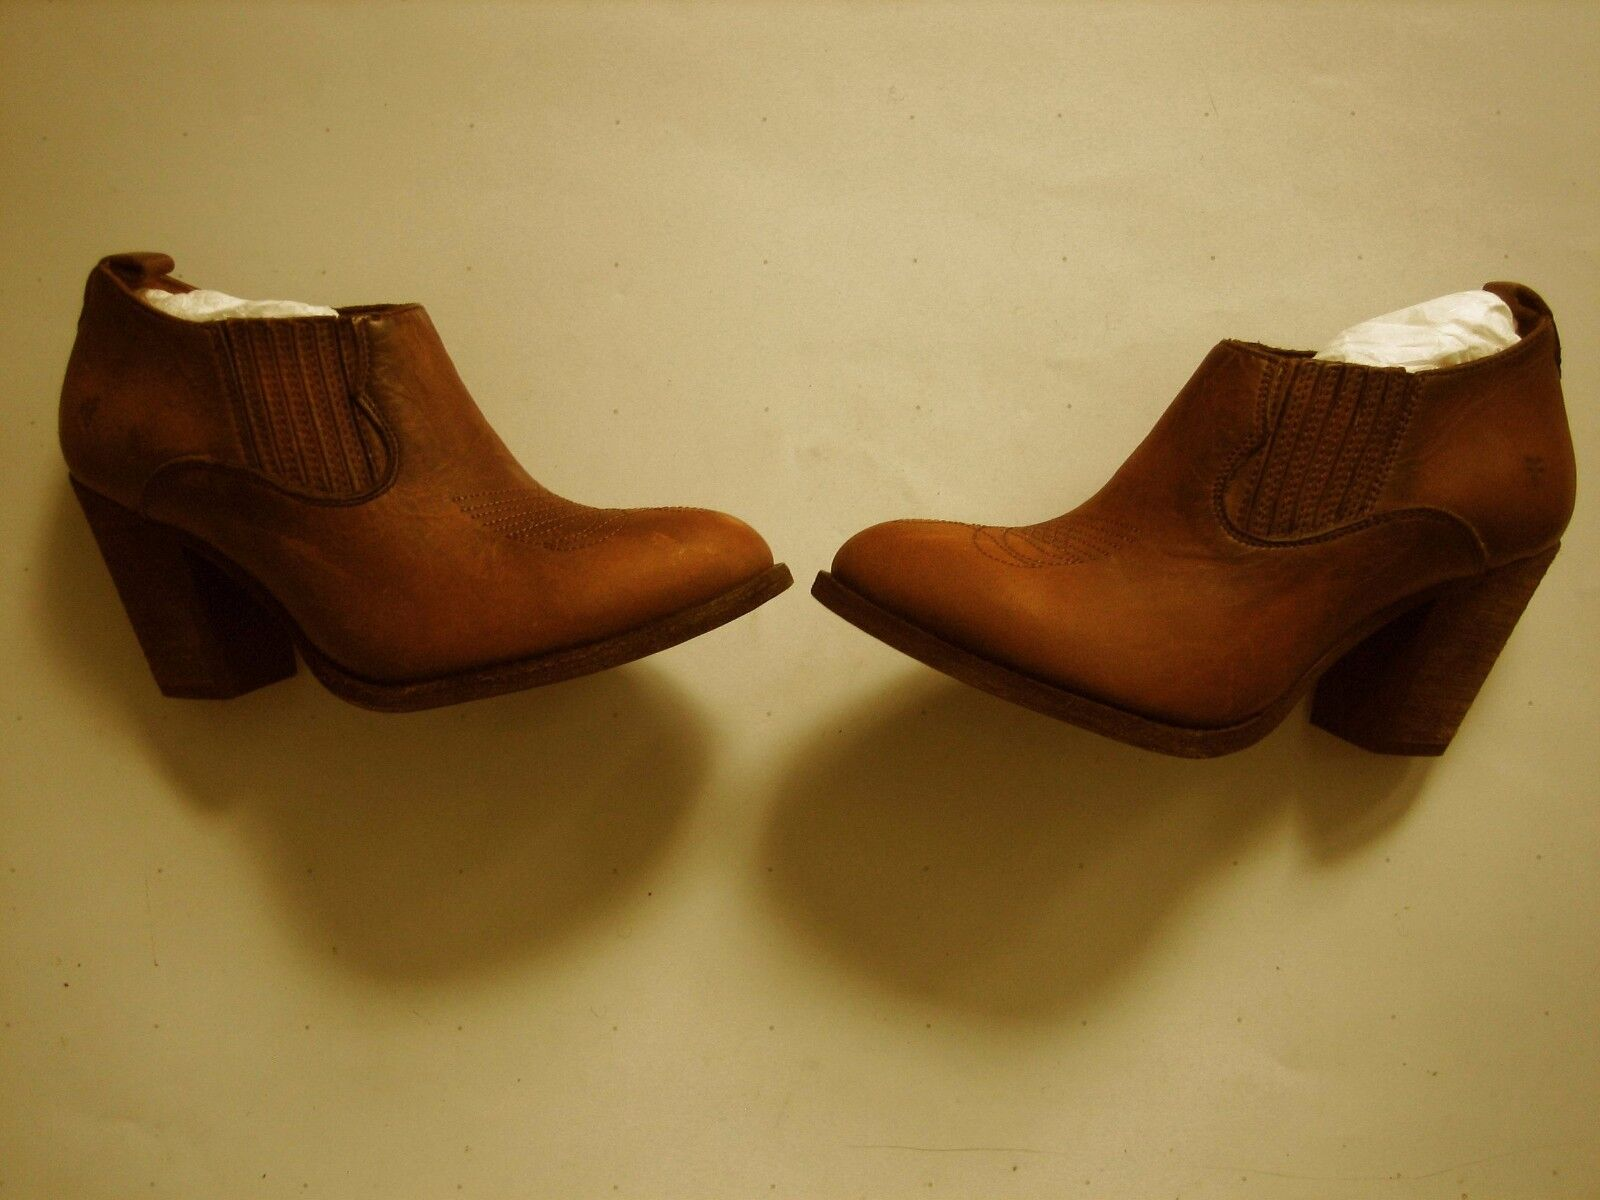 New  Pull Frye Ilana Pull  On Pelle Donna Shooties Booties Shoes Cognac 6 B 05514a